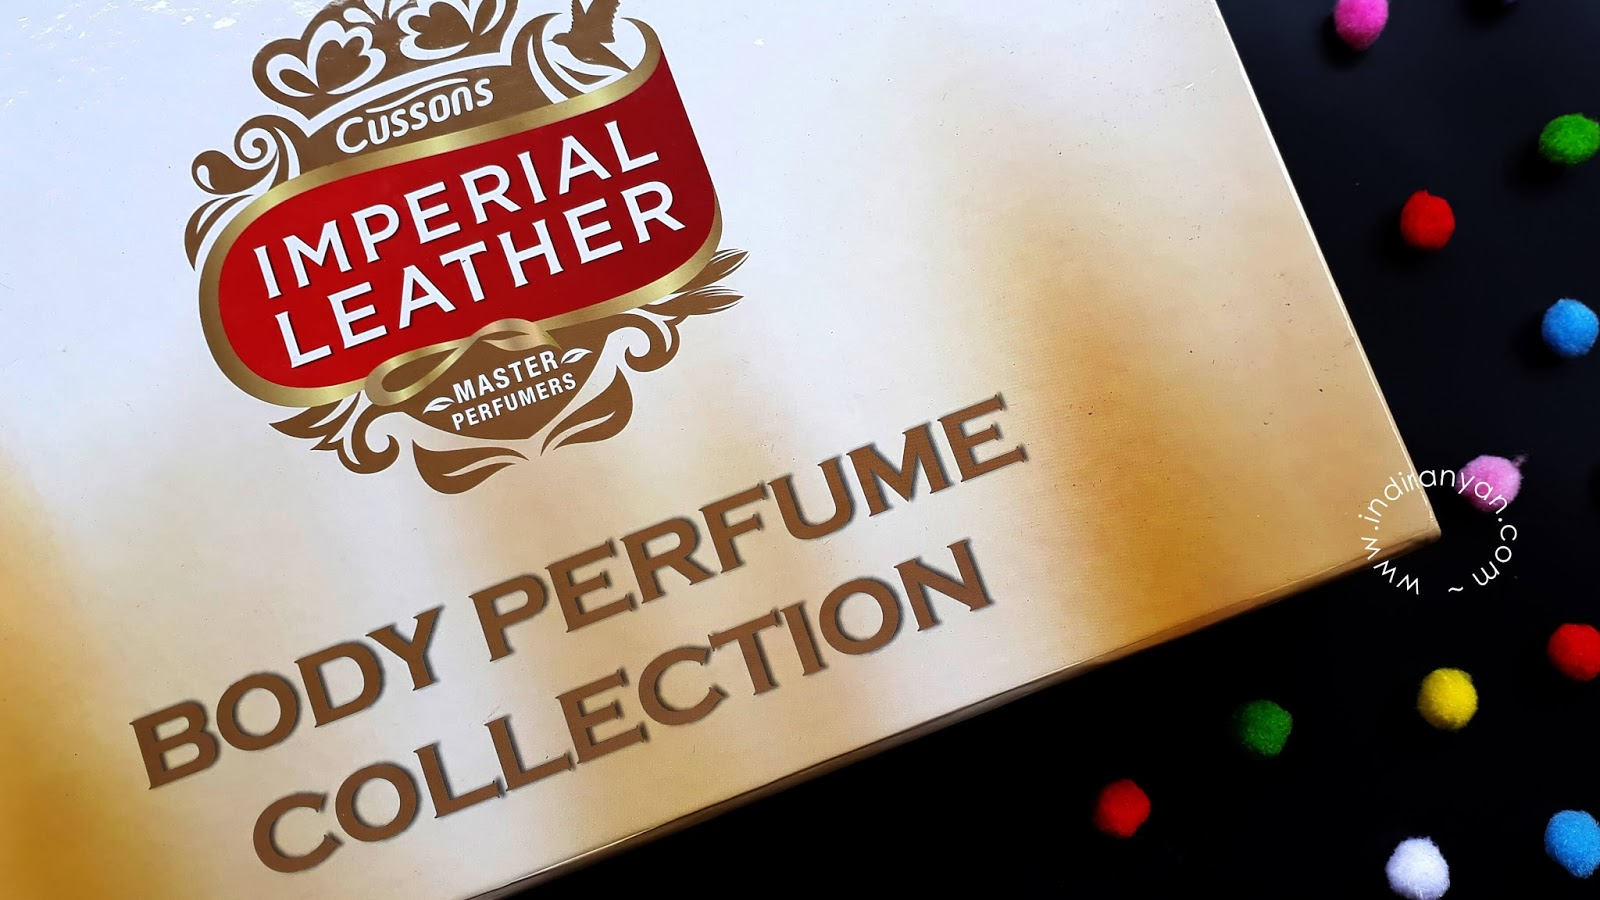 imperial-leather-body-perfume-